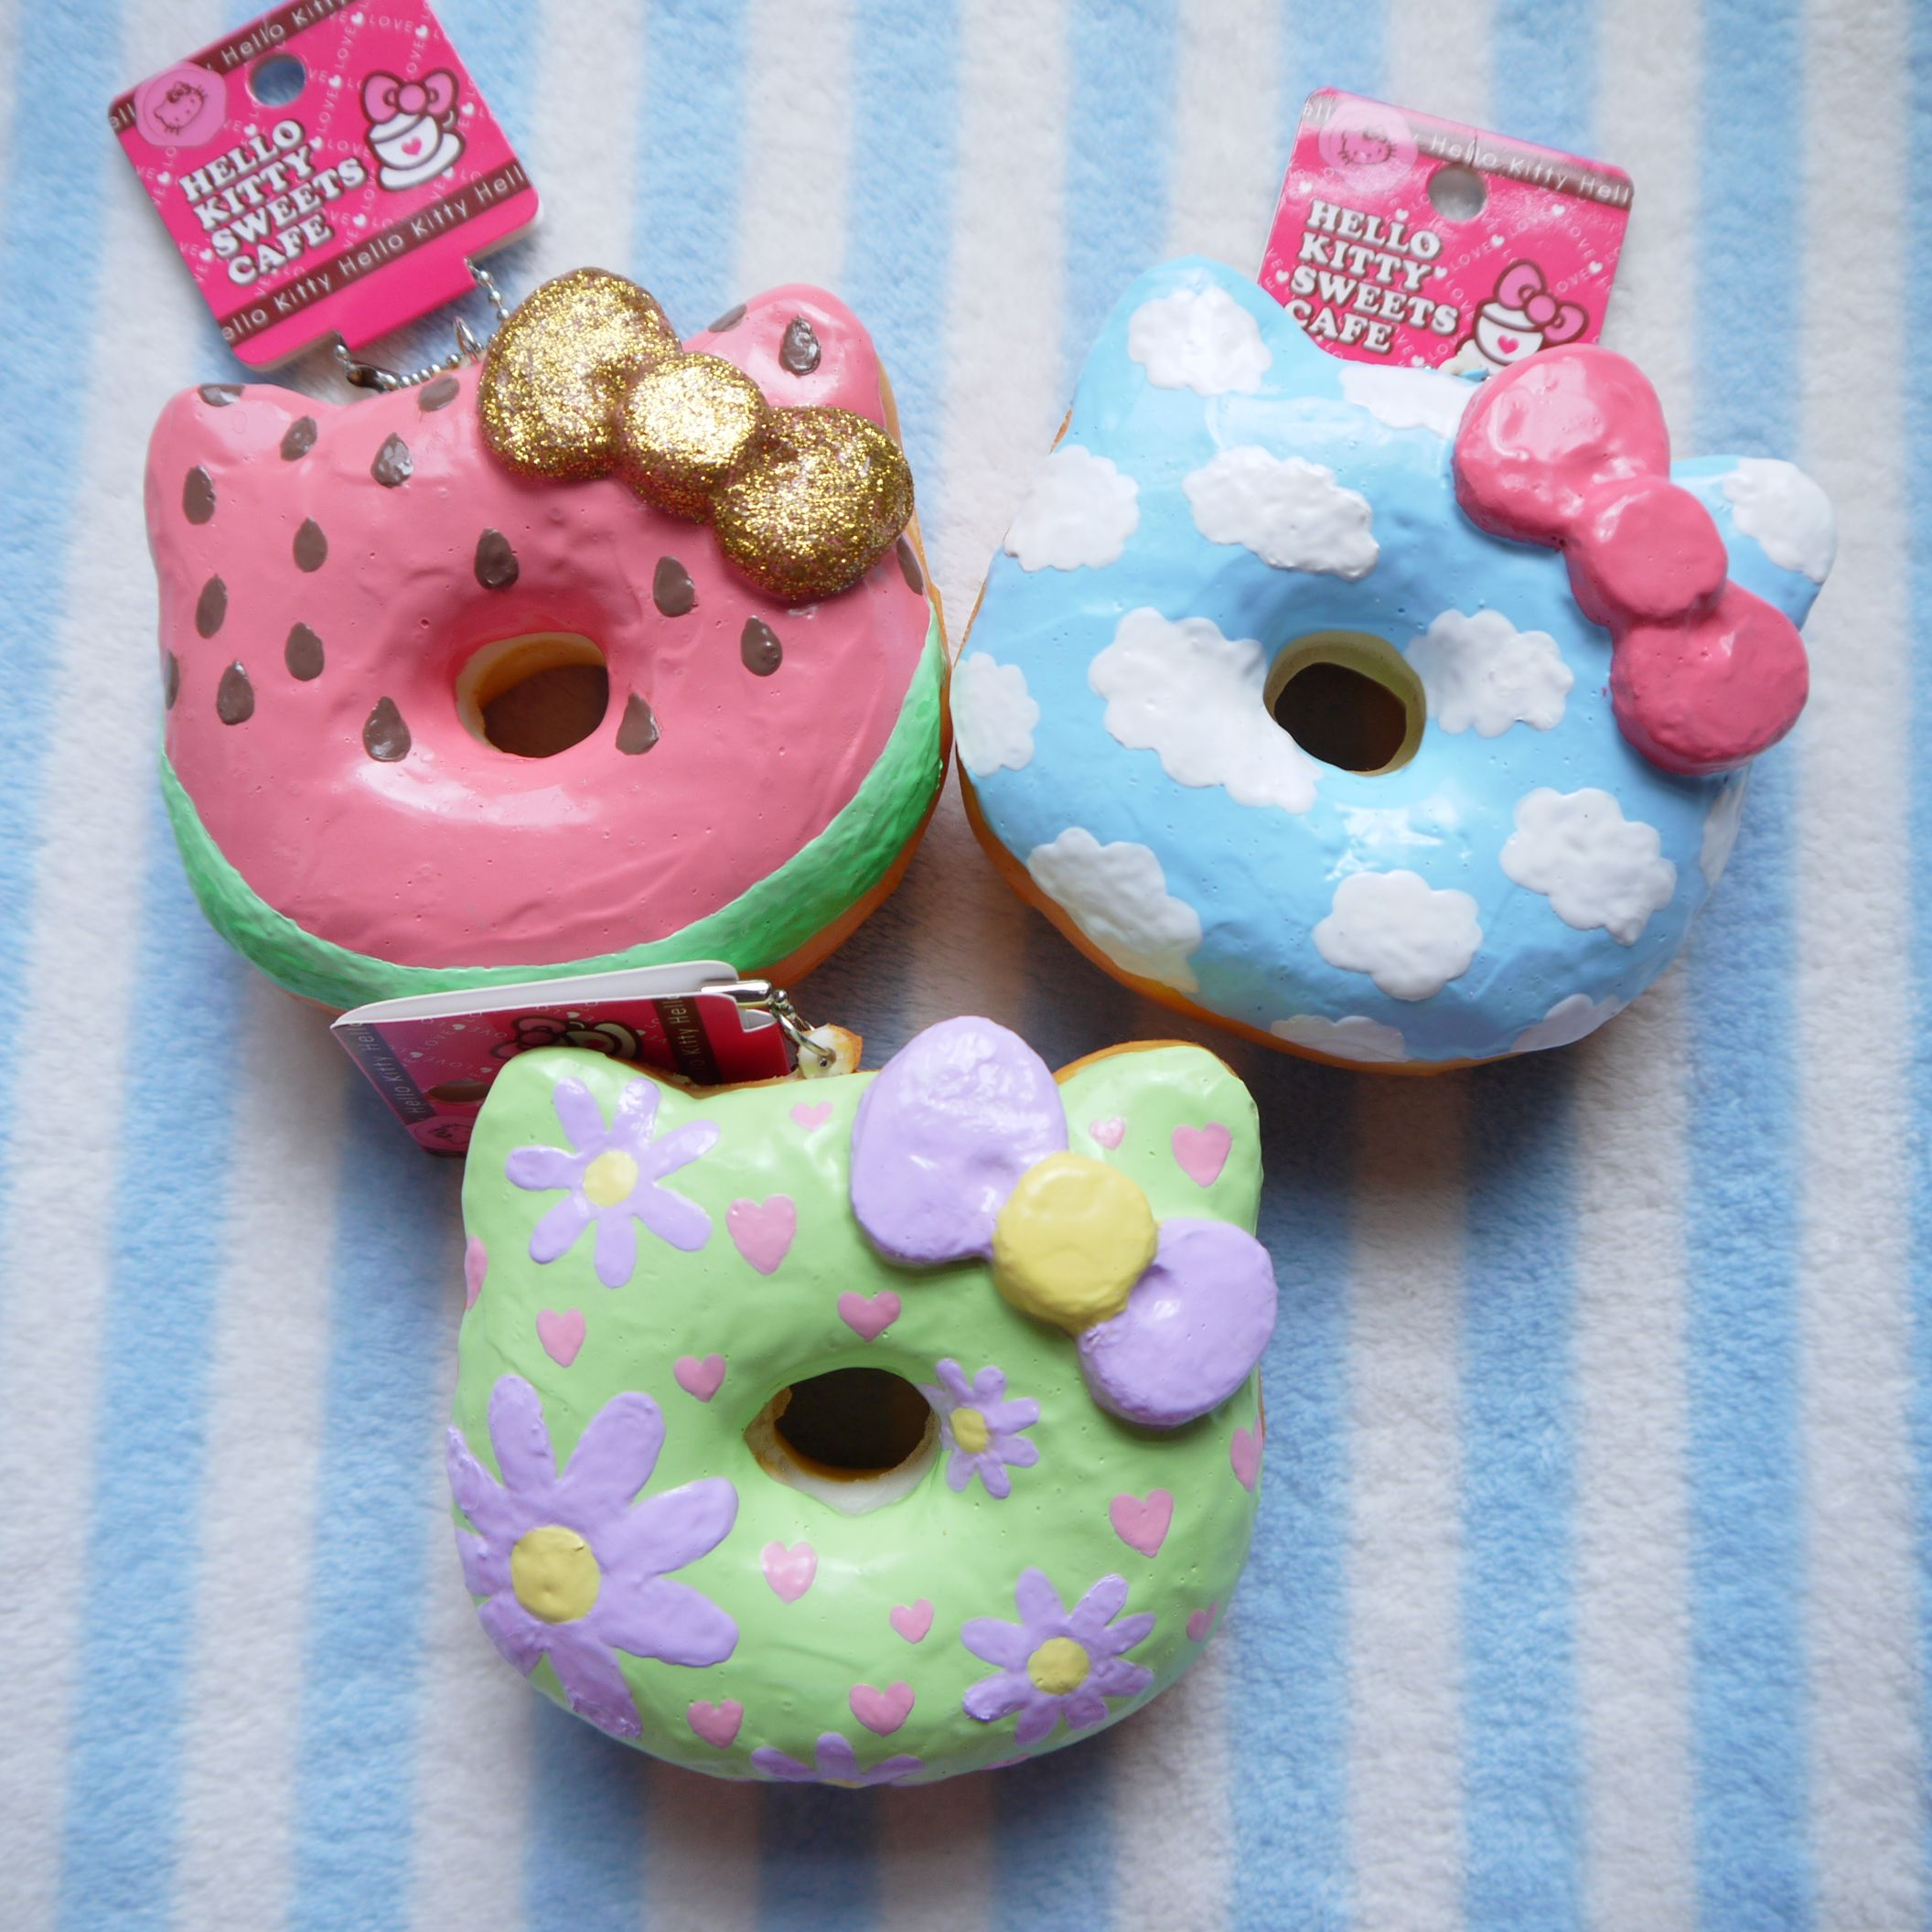 Silly Squishy Diy : You get all 3 decoed hk donut squishies :) Hobbies and crafts Pinterest Squishies, Hello ...